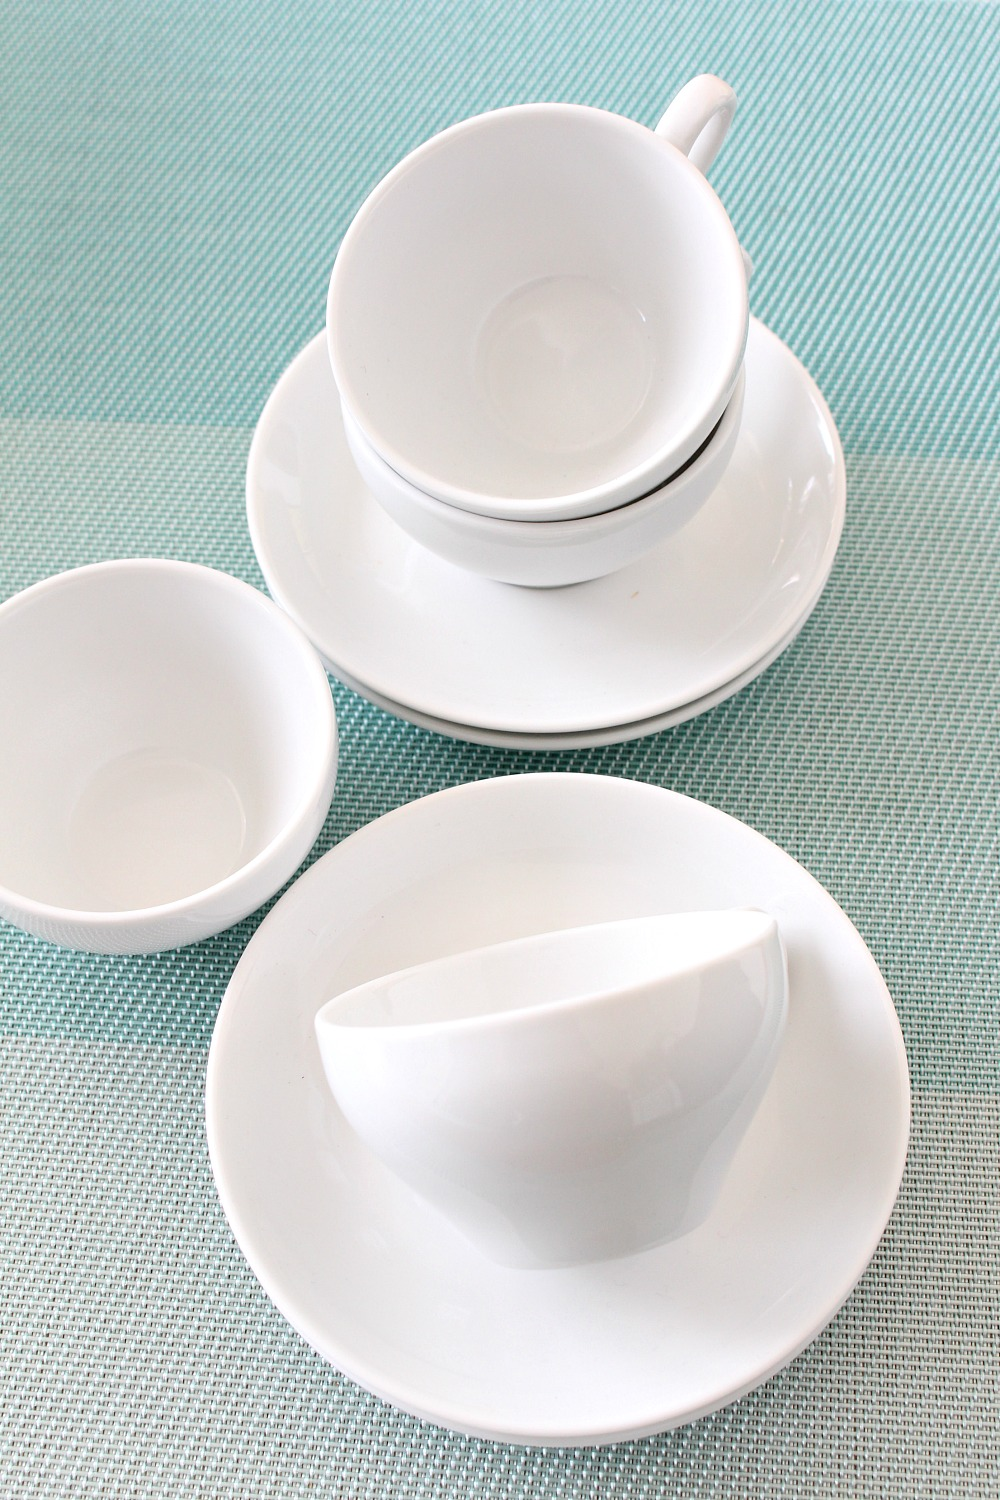 Update an old china set